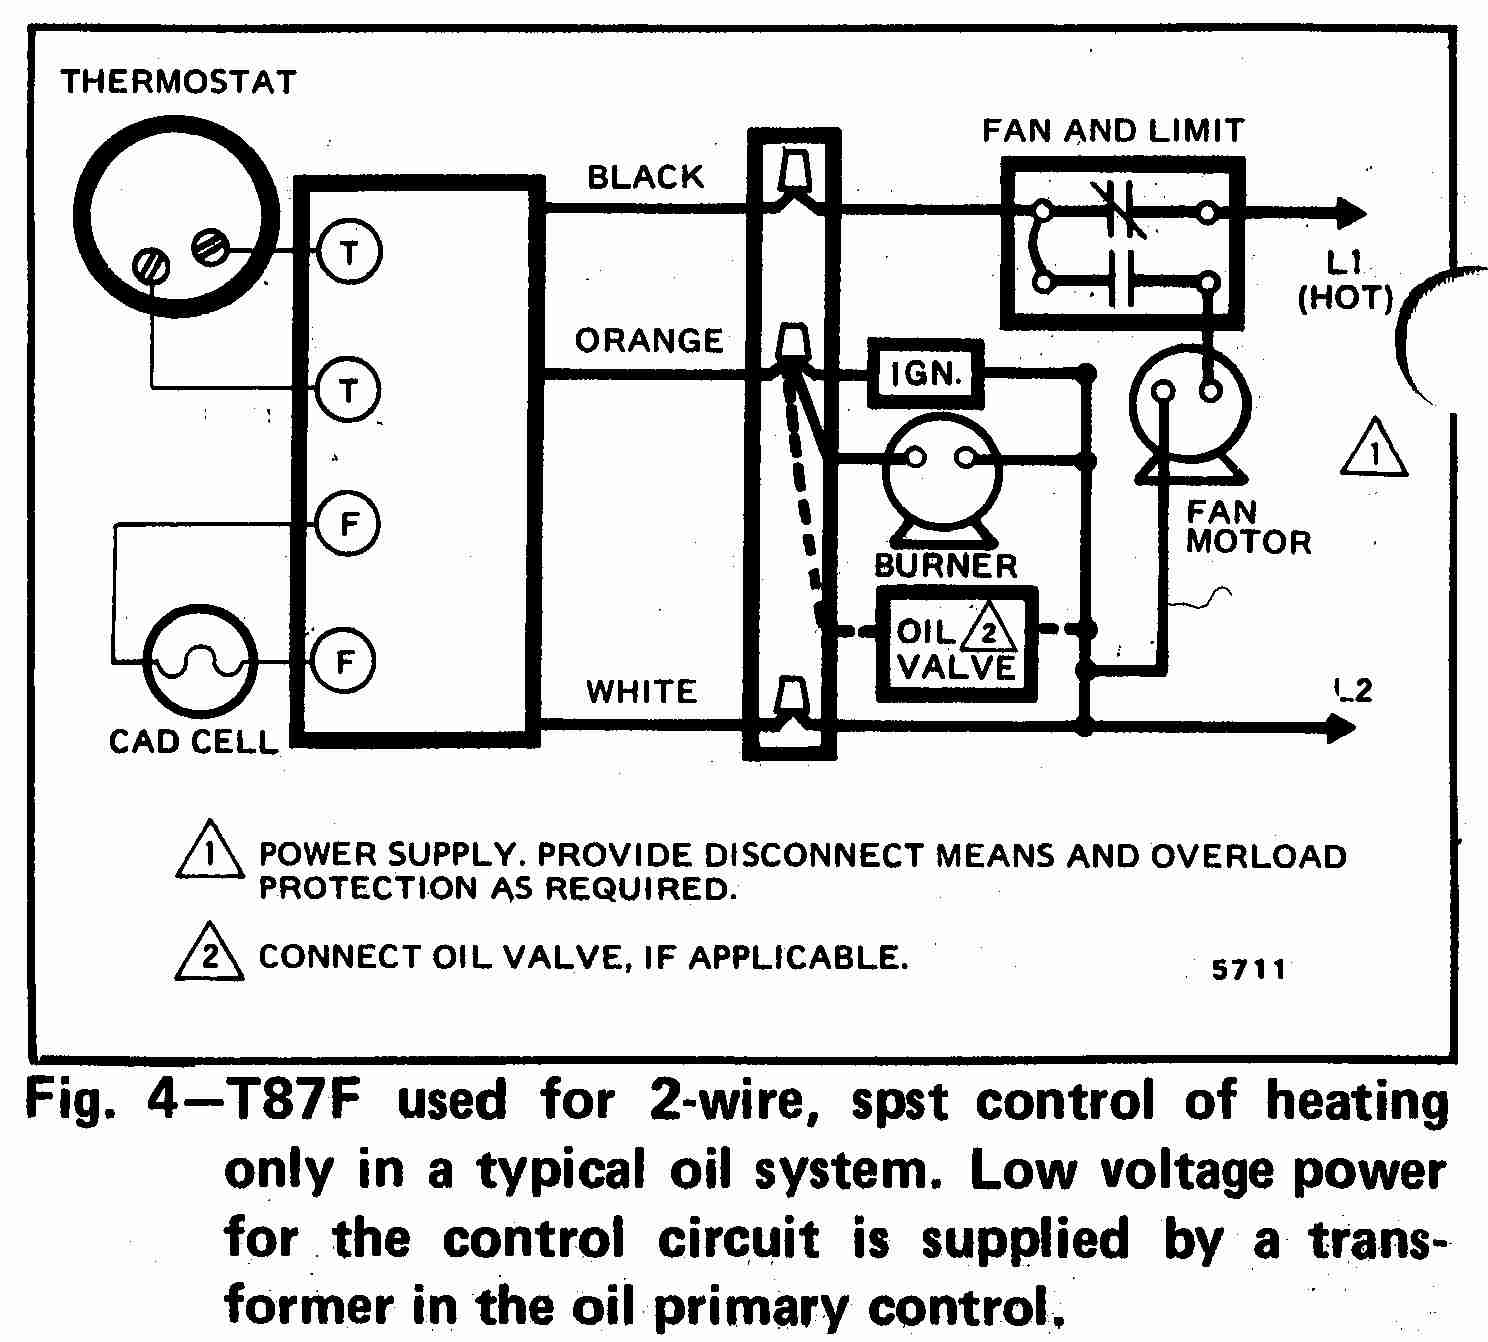 Wondrous Hvac Low Voltage Wiring Wiring Diagram Wiring Digital Resources Spoatbouhousnl